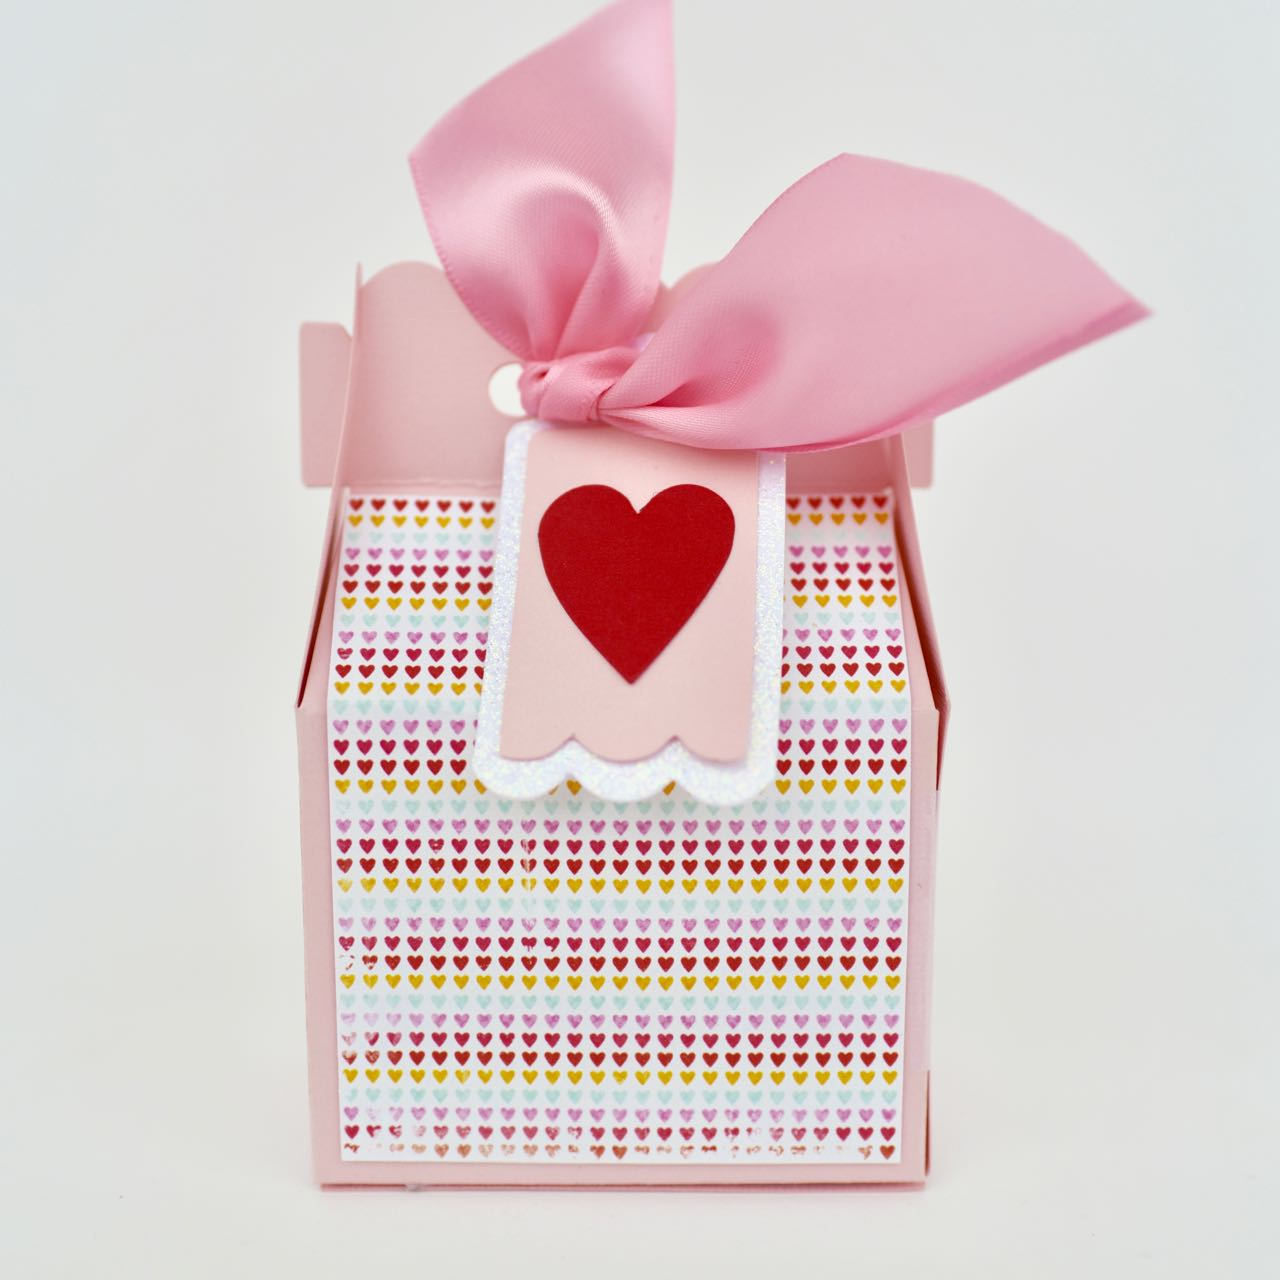 Awesome valentine construction paper crafts Valentine Candy Box Craft Make Life Lovely